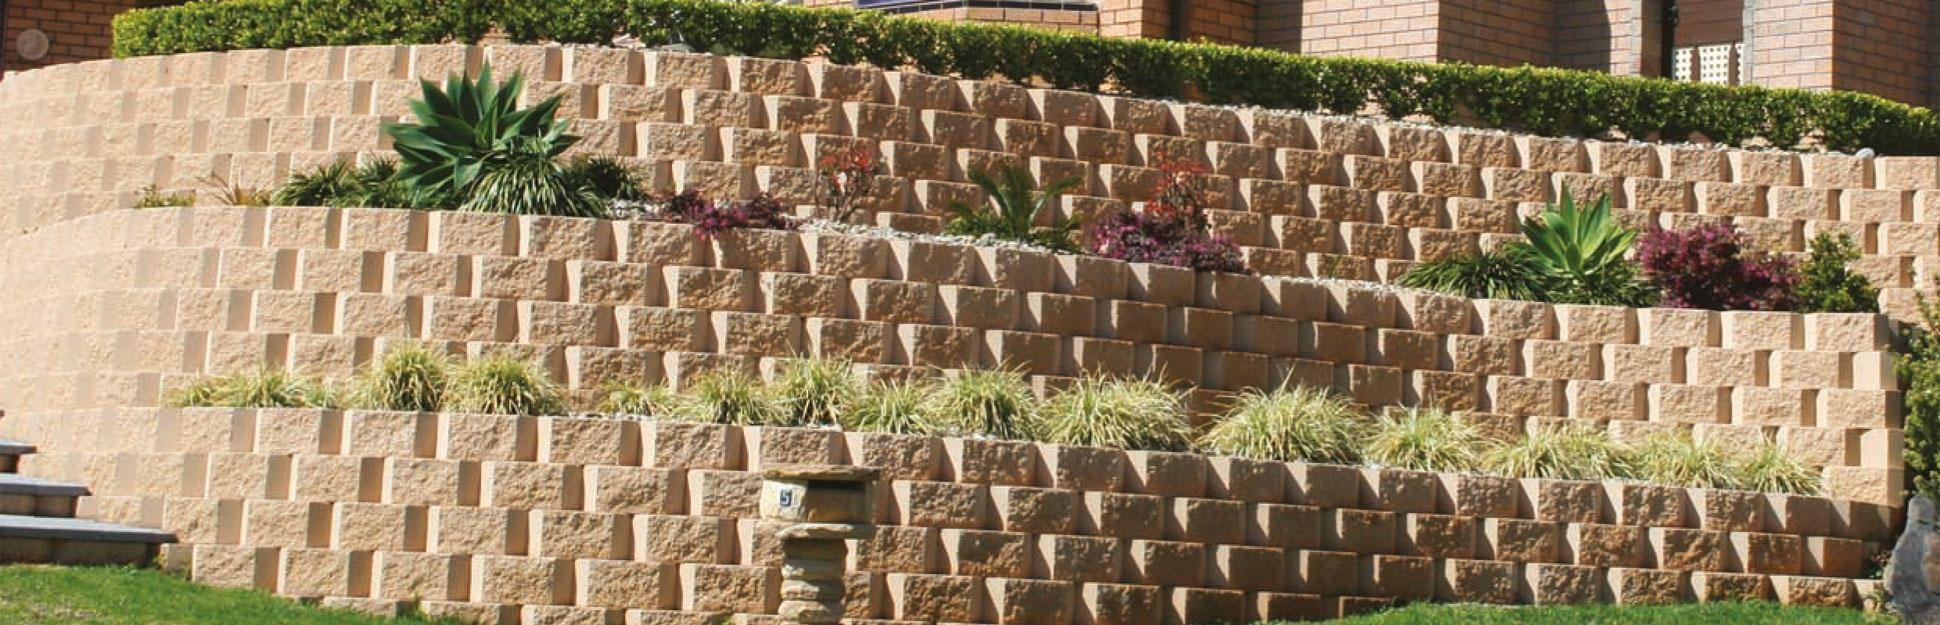 Norfolk concrete block retaining wall system